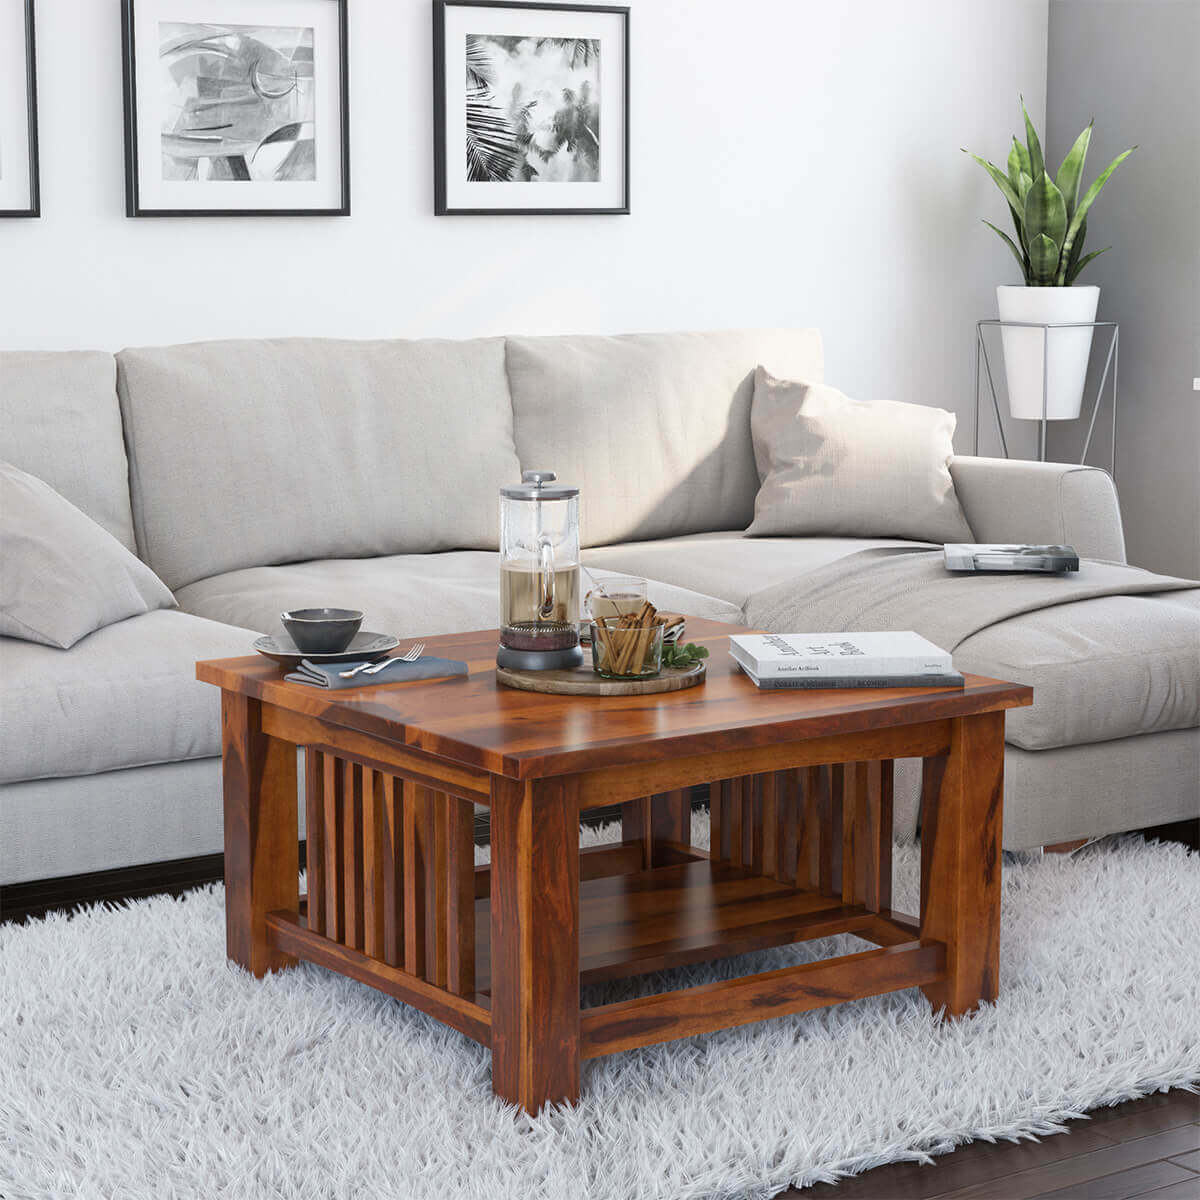 Rustic solid wood square coffee table furniture Coffee tables rustic